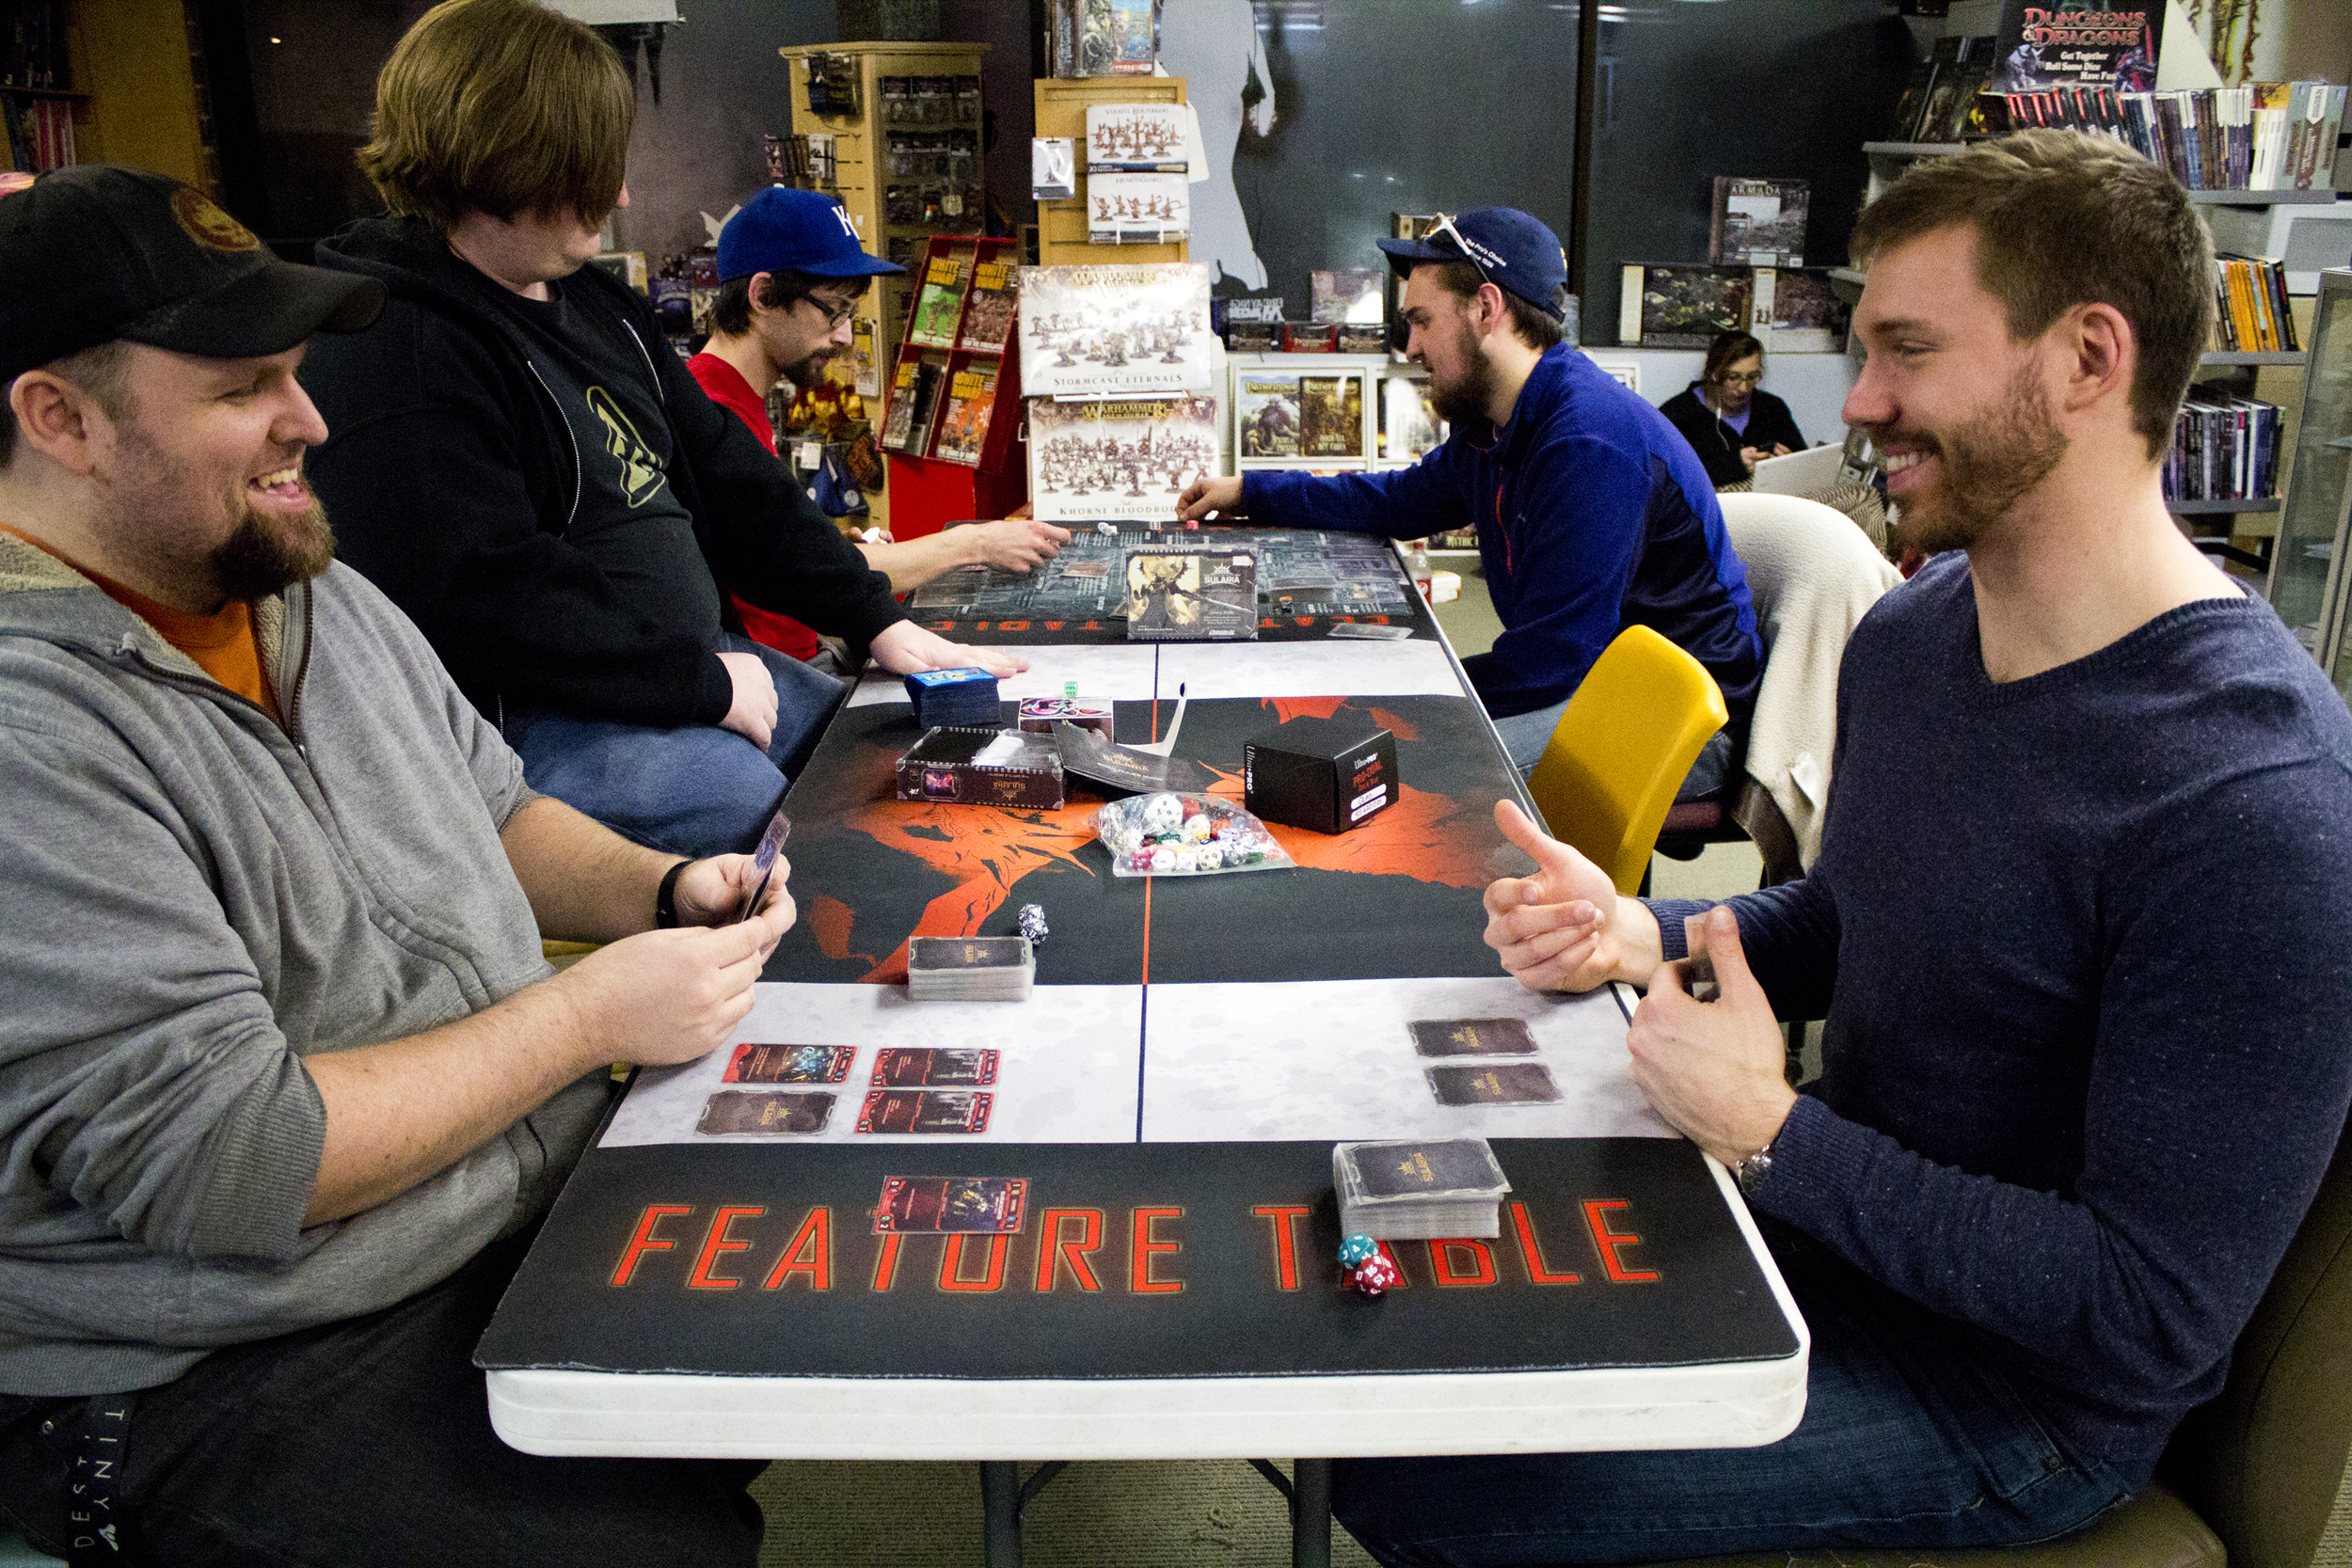 On the right – Matt Ochs giving out some pro tips at his local gaming store.